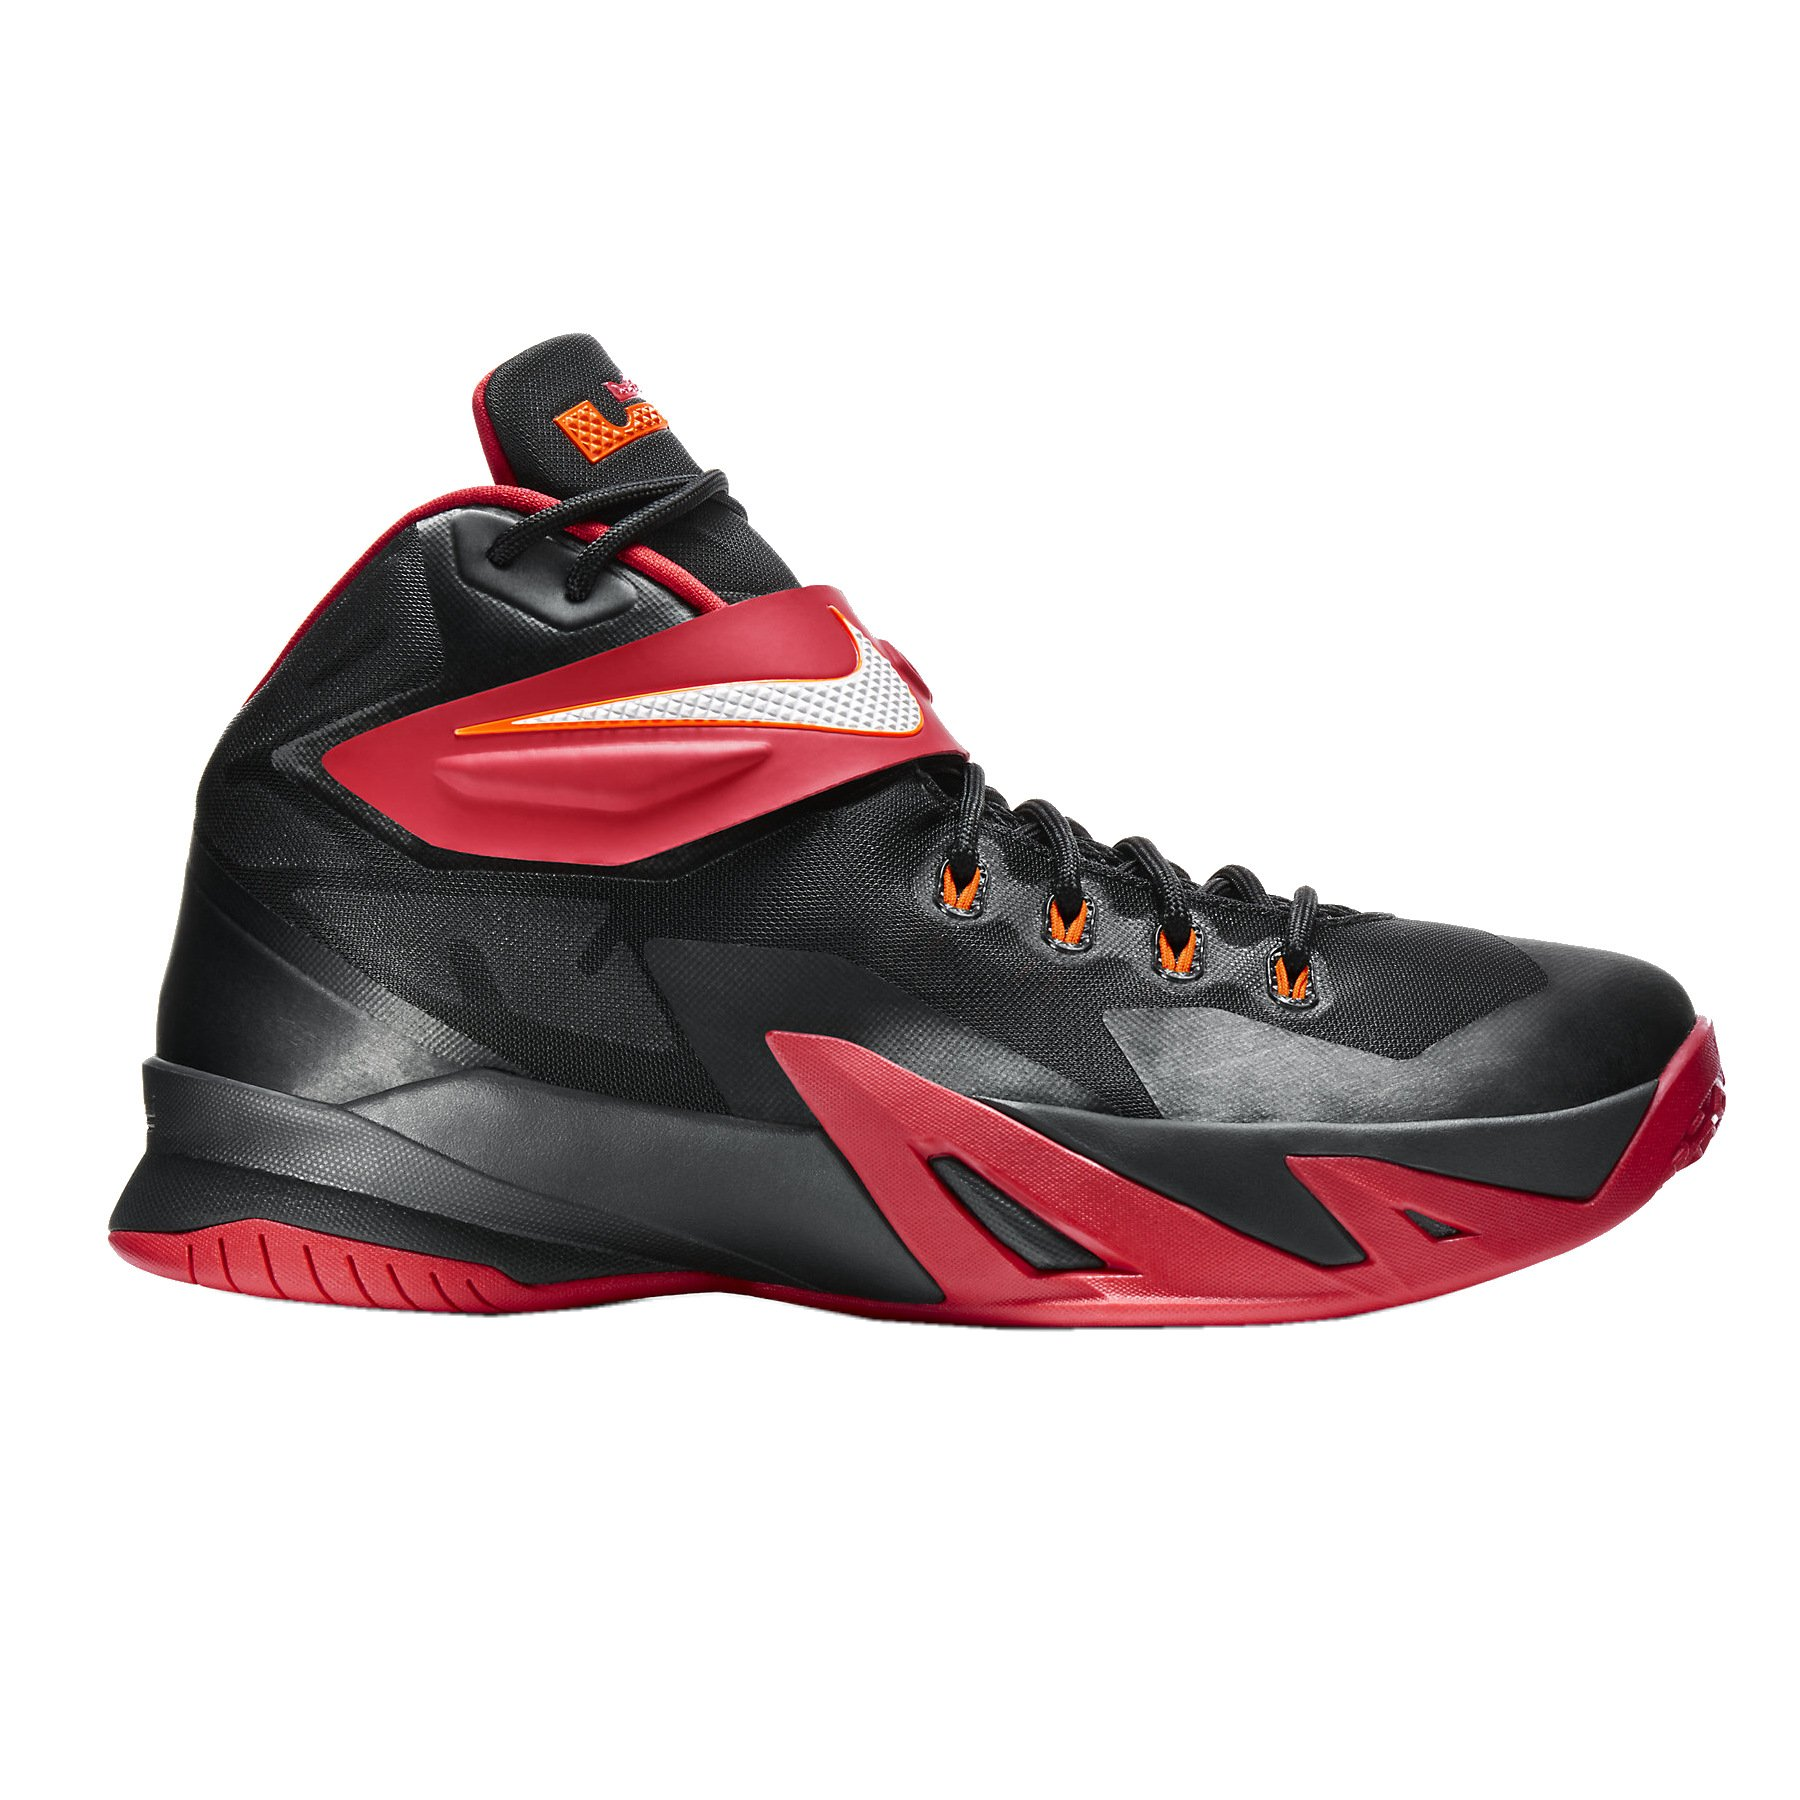 c301709e8ad Galleon - Nike Men s Zoom Soldier VIII Basketball Shoe Black Red White Size  9 M US